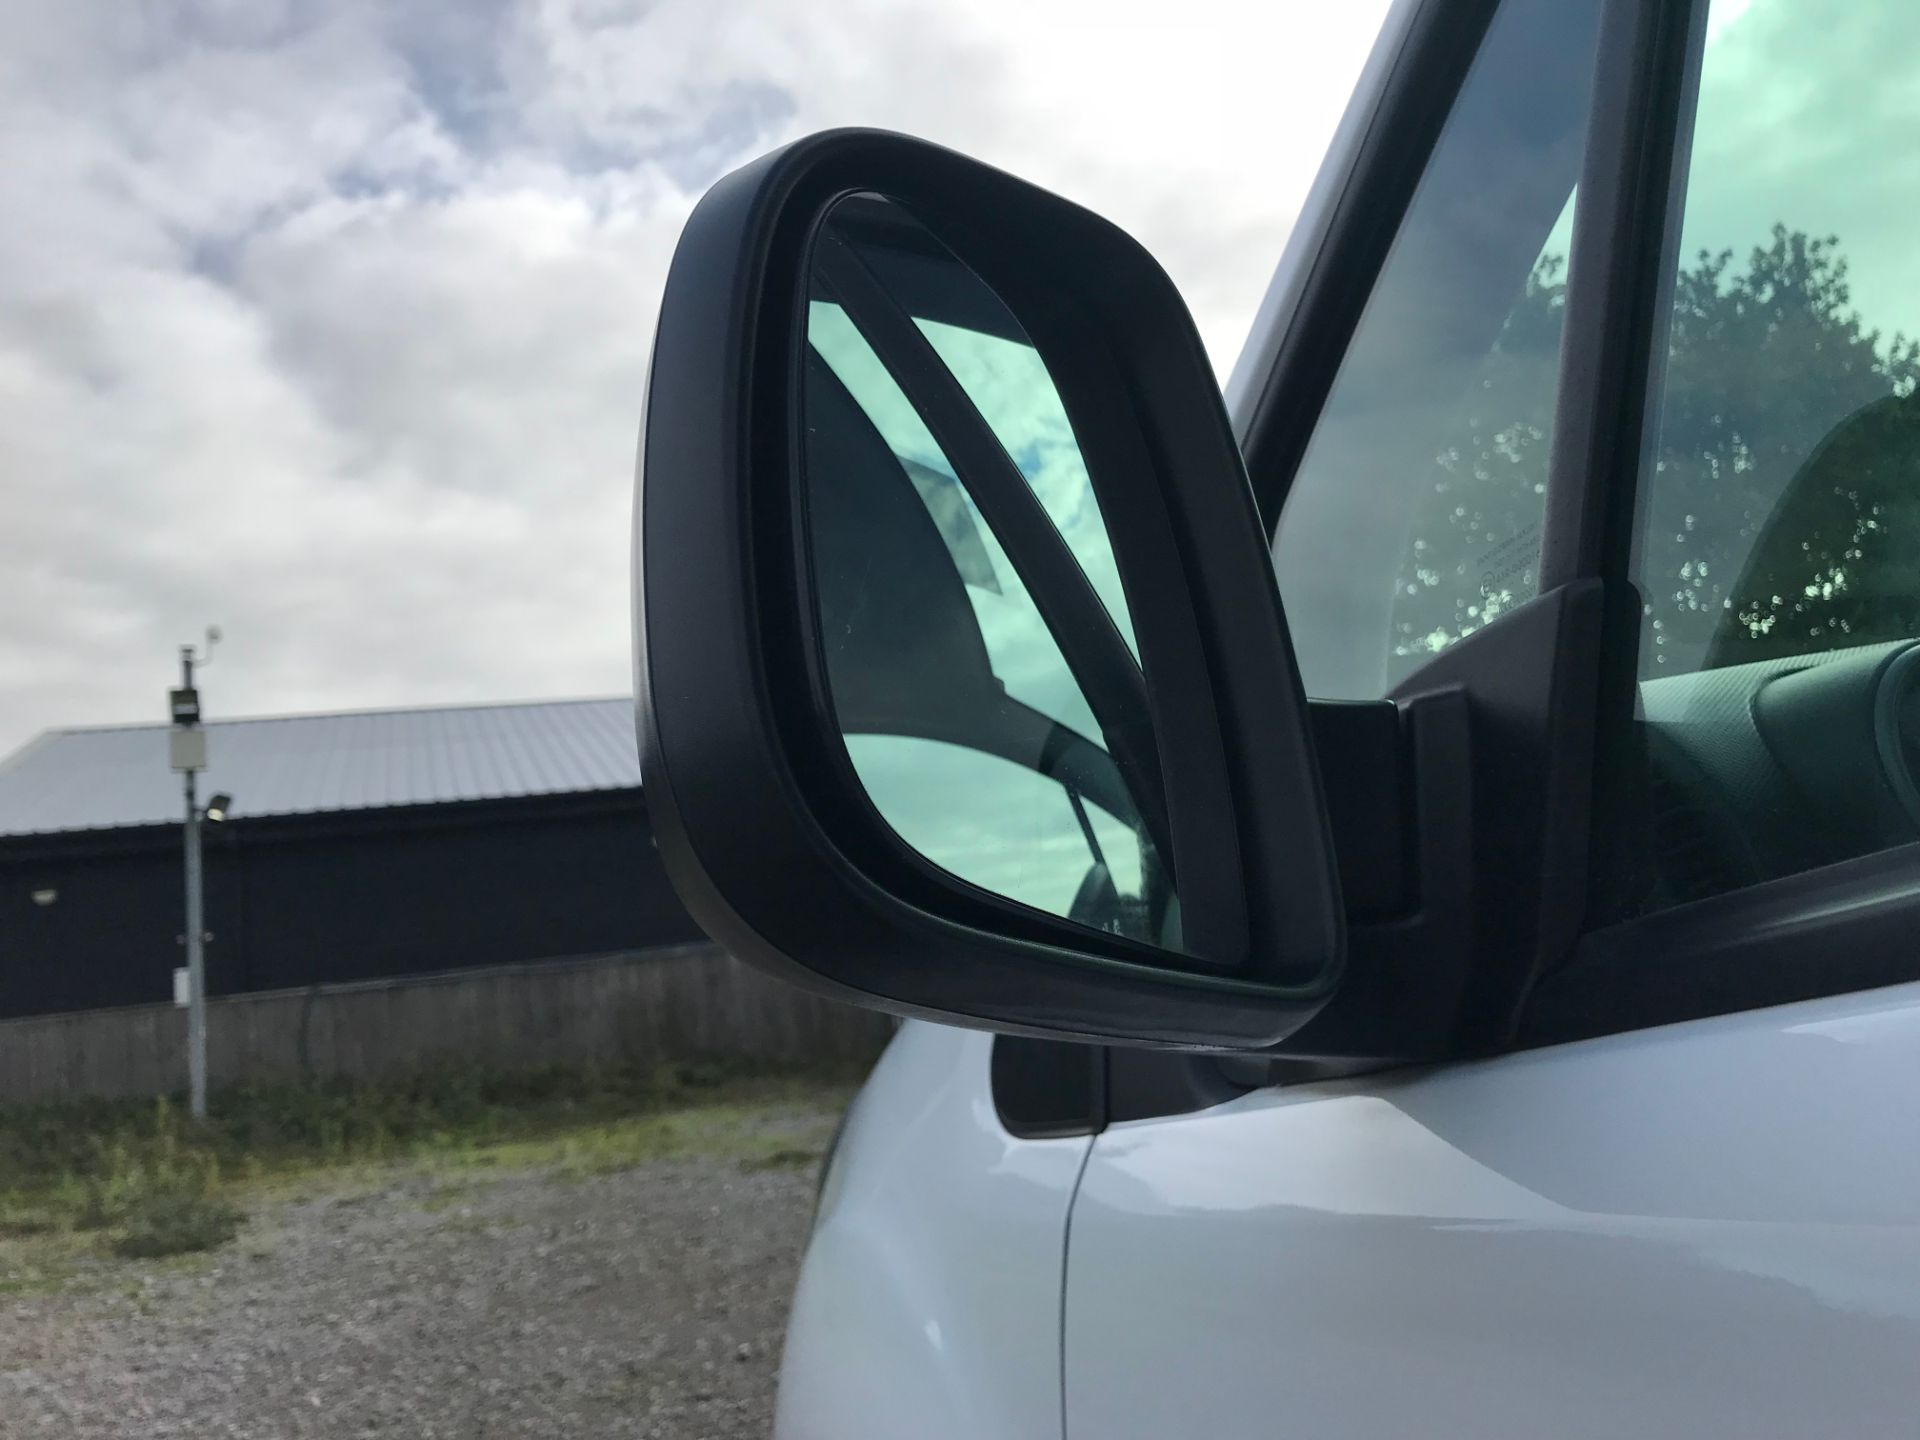 2018 Peugeot Partner 850 1.6 Bluehdi 100 Professional Van [Non Ss]*Restricted to 69MPH* (NV18PXR) Image 14